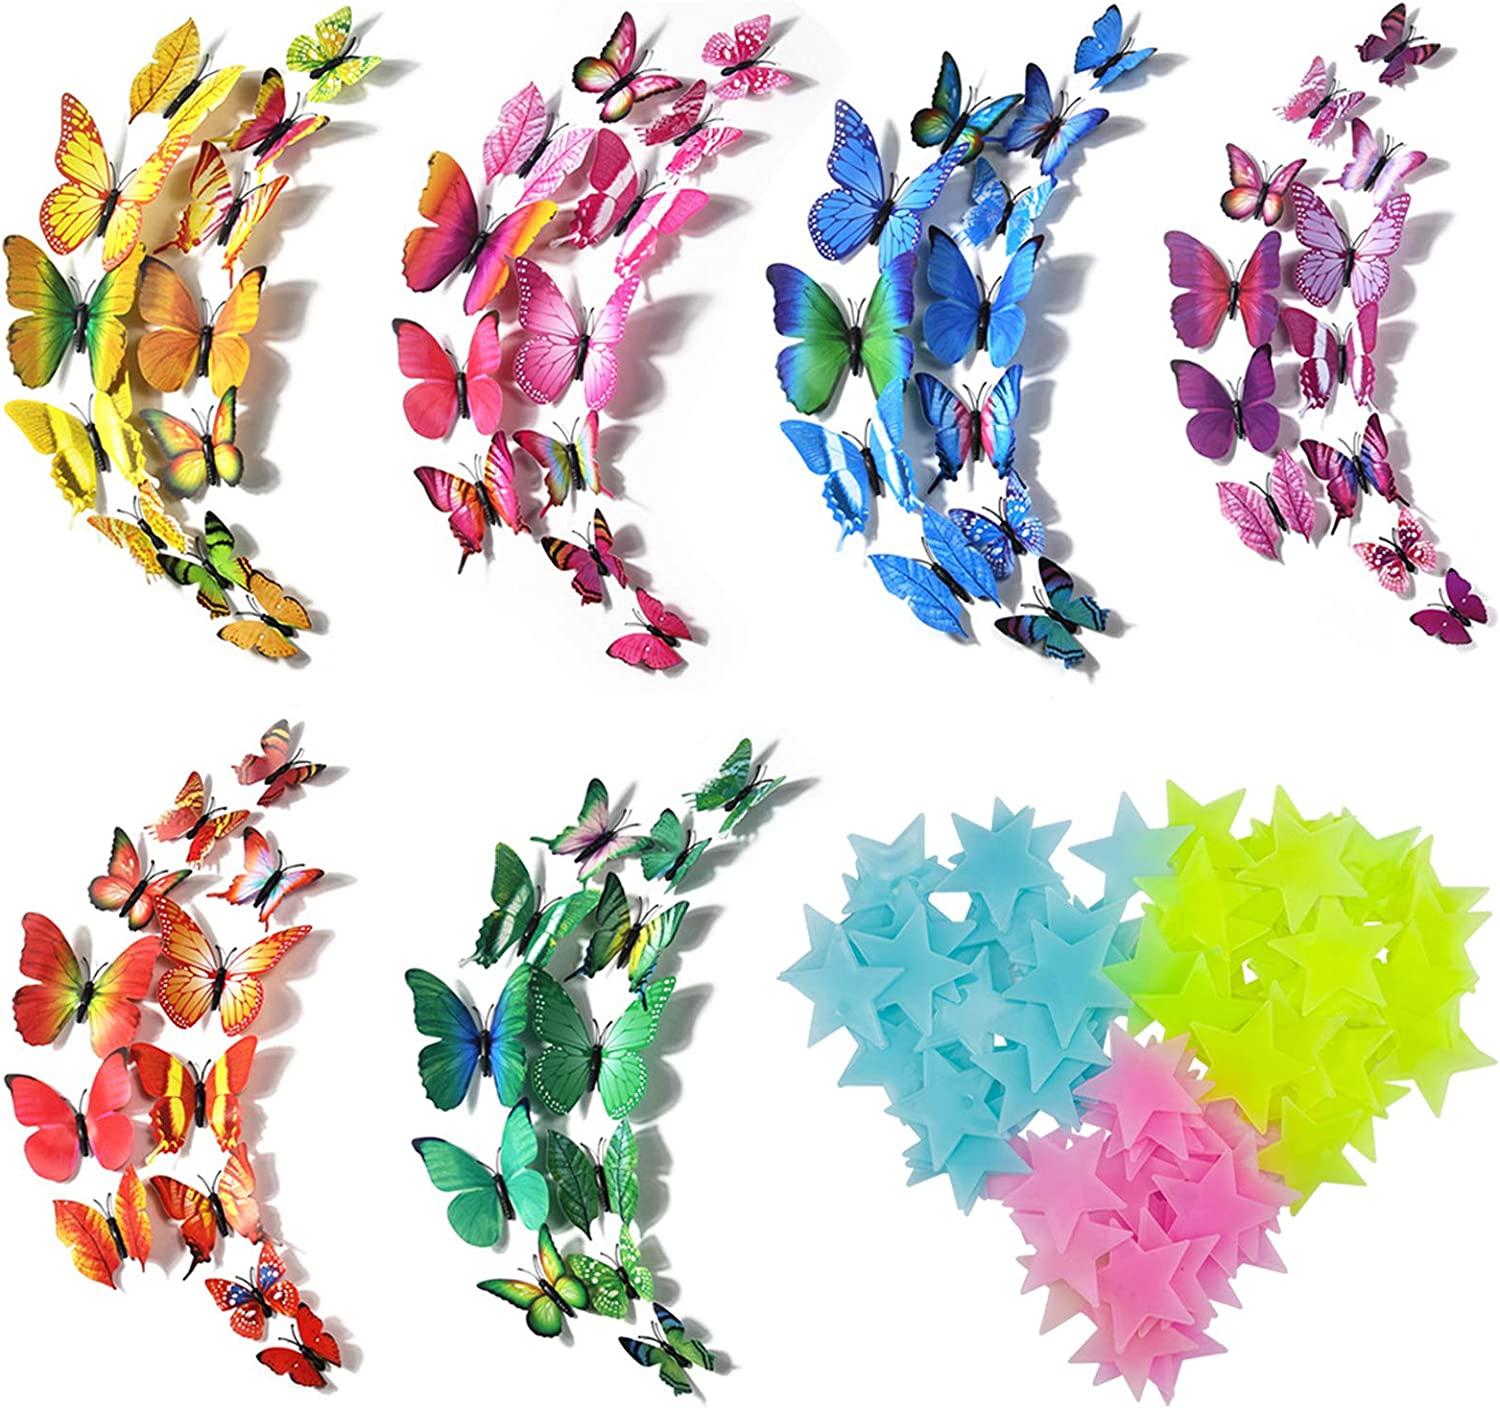 3D Butterfly Wall Decor 72 Pcs Colorful Butterfly Wall Stickers +100 Pcs Glow in The Dark Luminous Stars, Wall Stickers Removable Mural Decals Home Decoration Kids Room Bedroom Decor